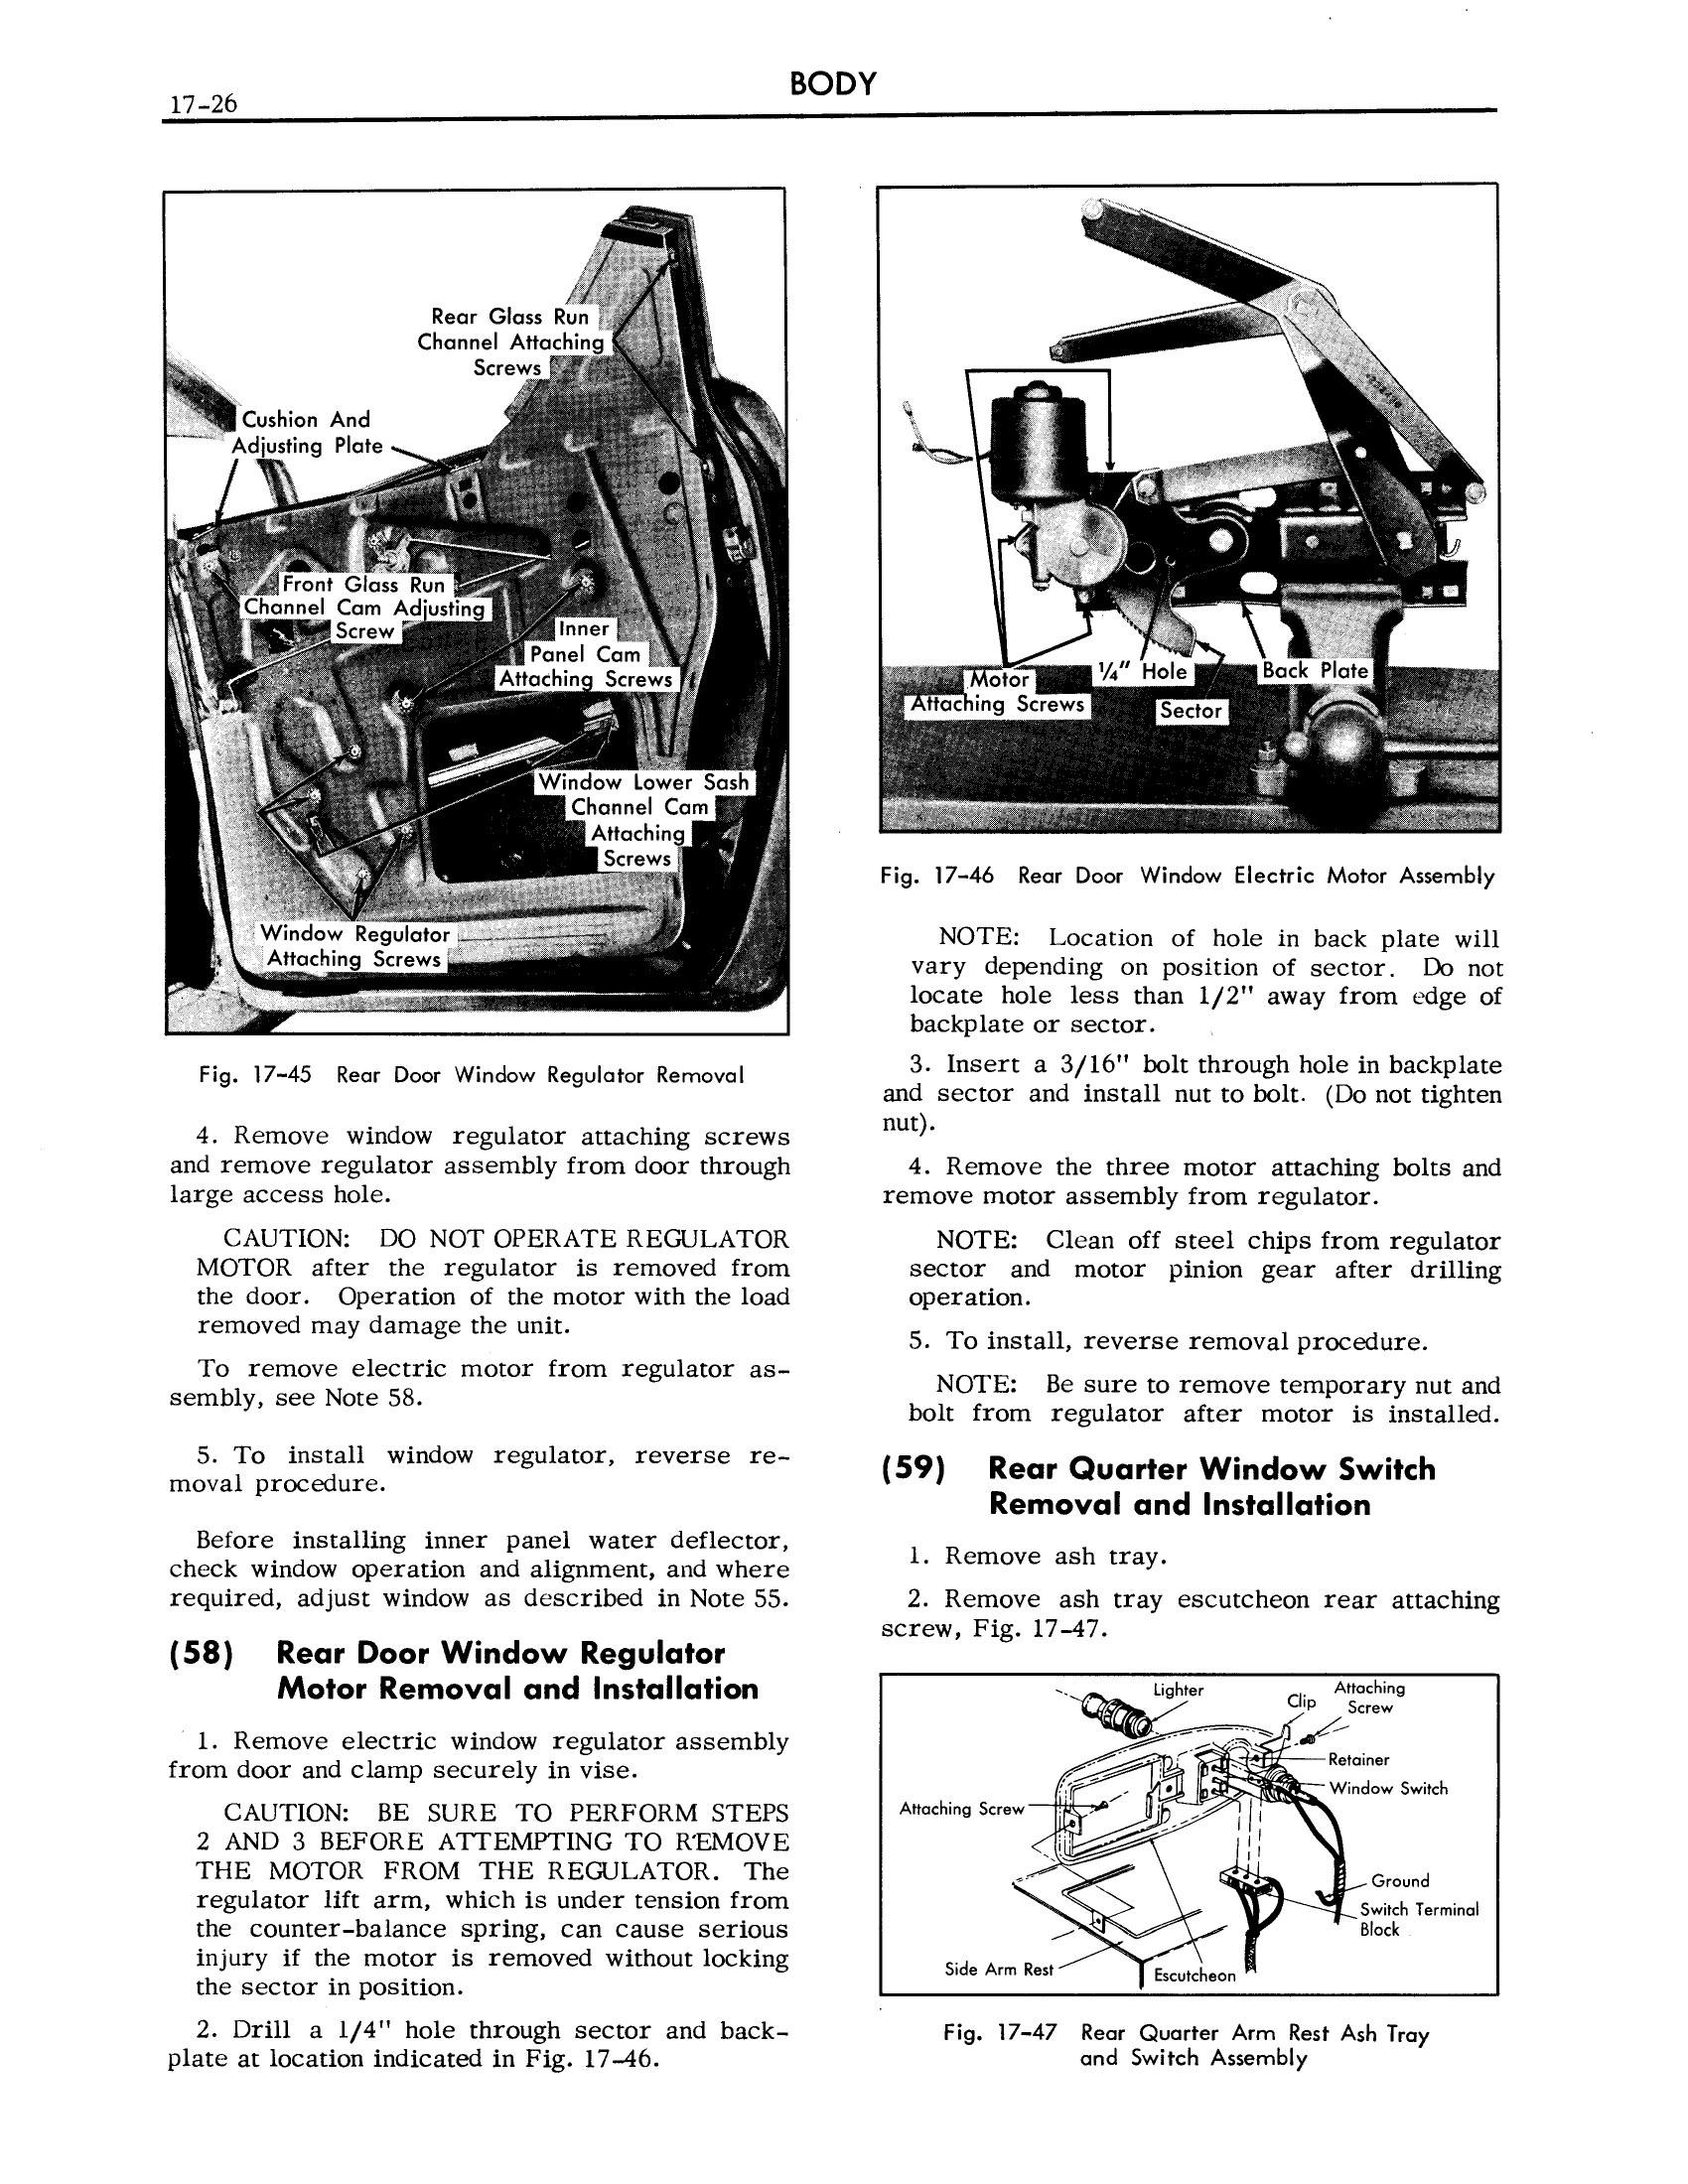 1957 Cadillac Shop Manual- Body Page 26 of 76